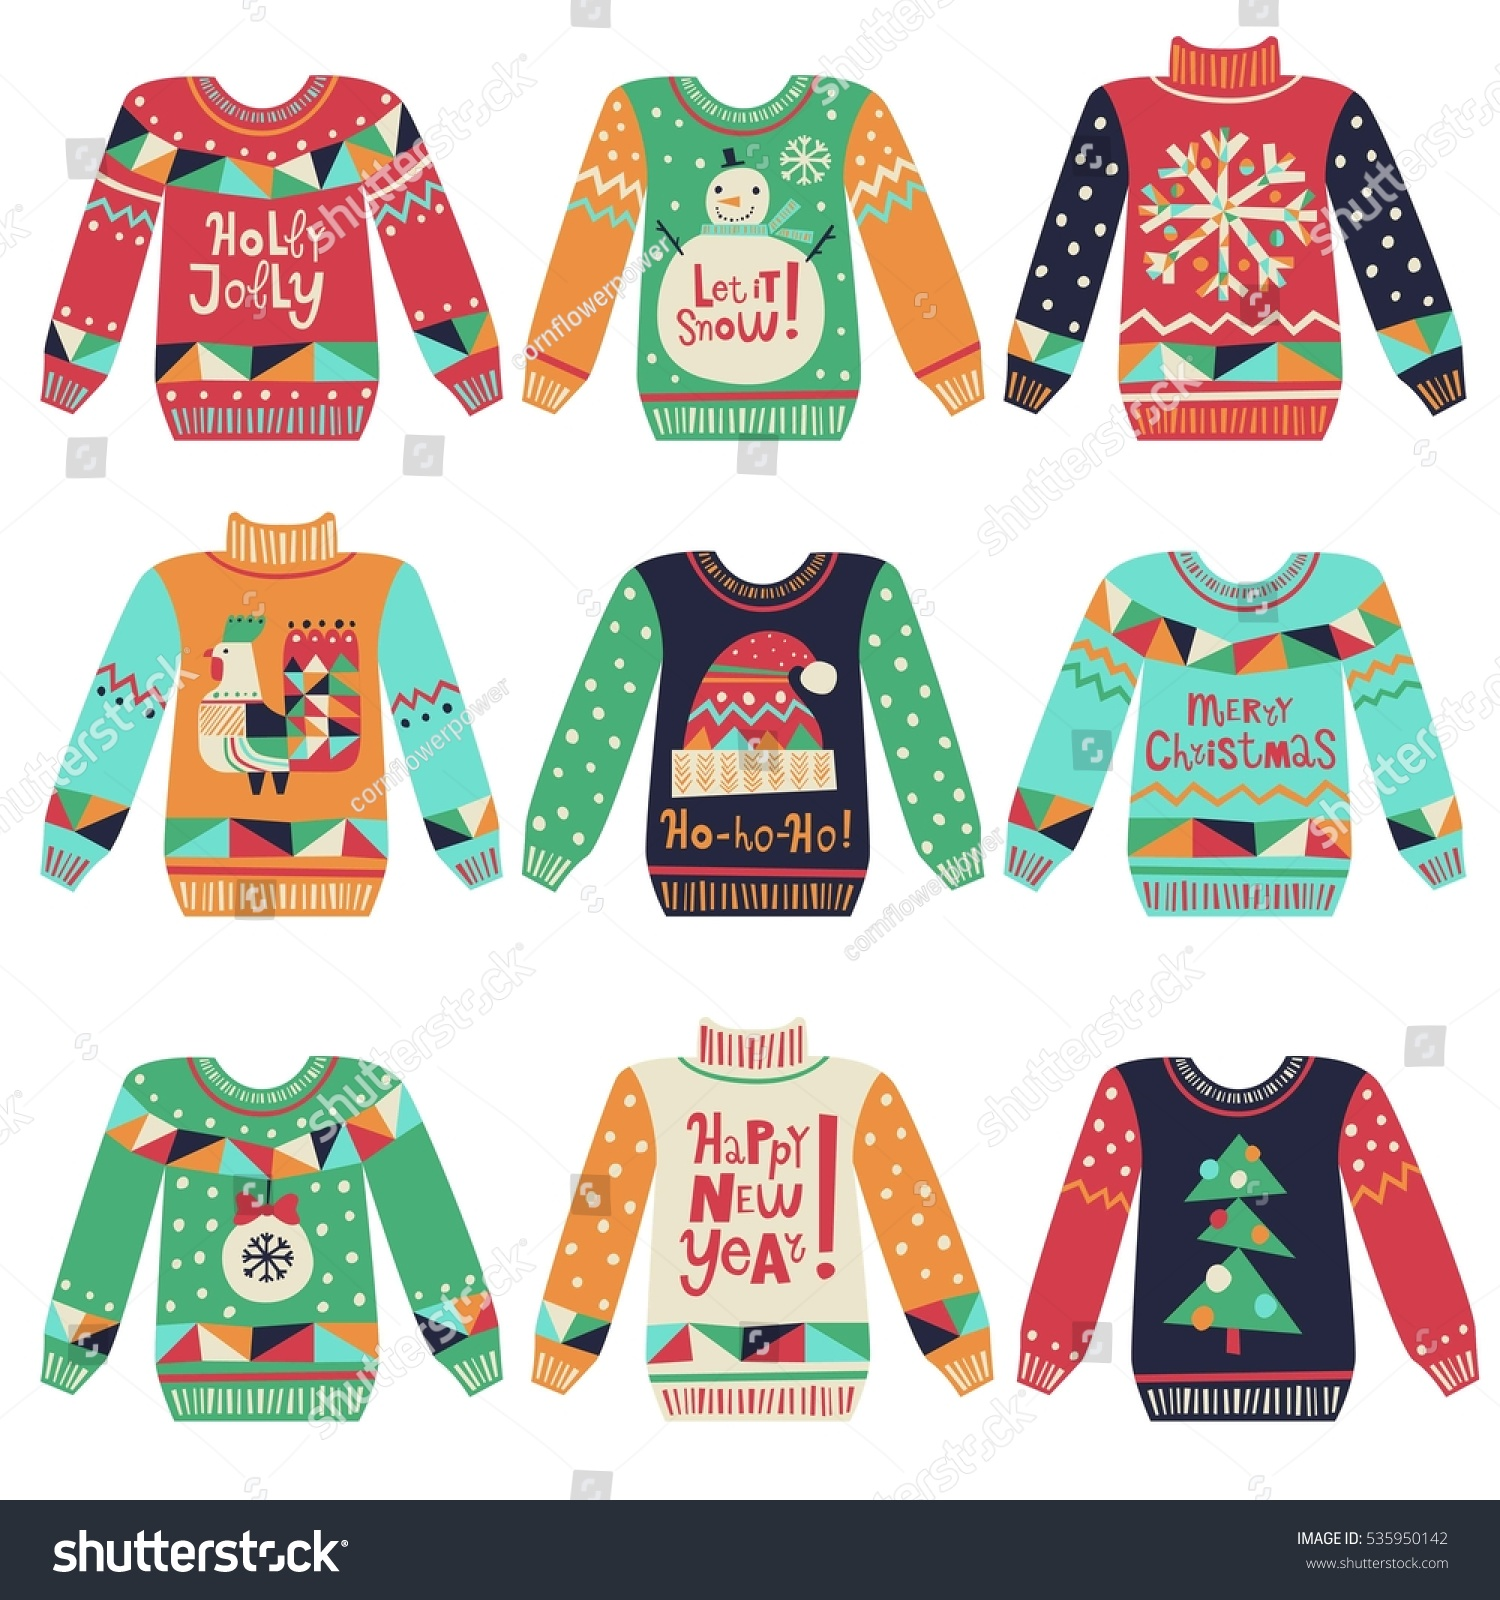 stock-vector-cute-ugly-christmas-sweaters-vector-set-sweater-party-clip-art-collection-for-invitations-535950142.jpg